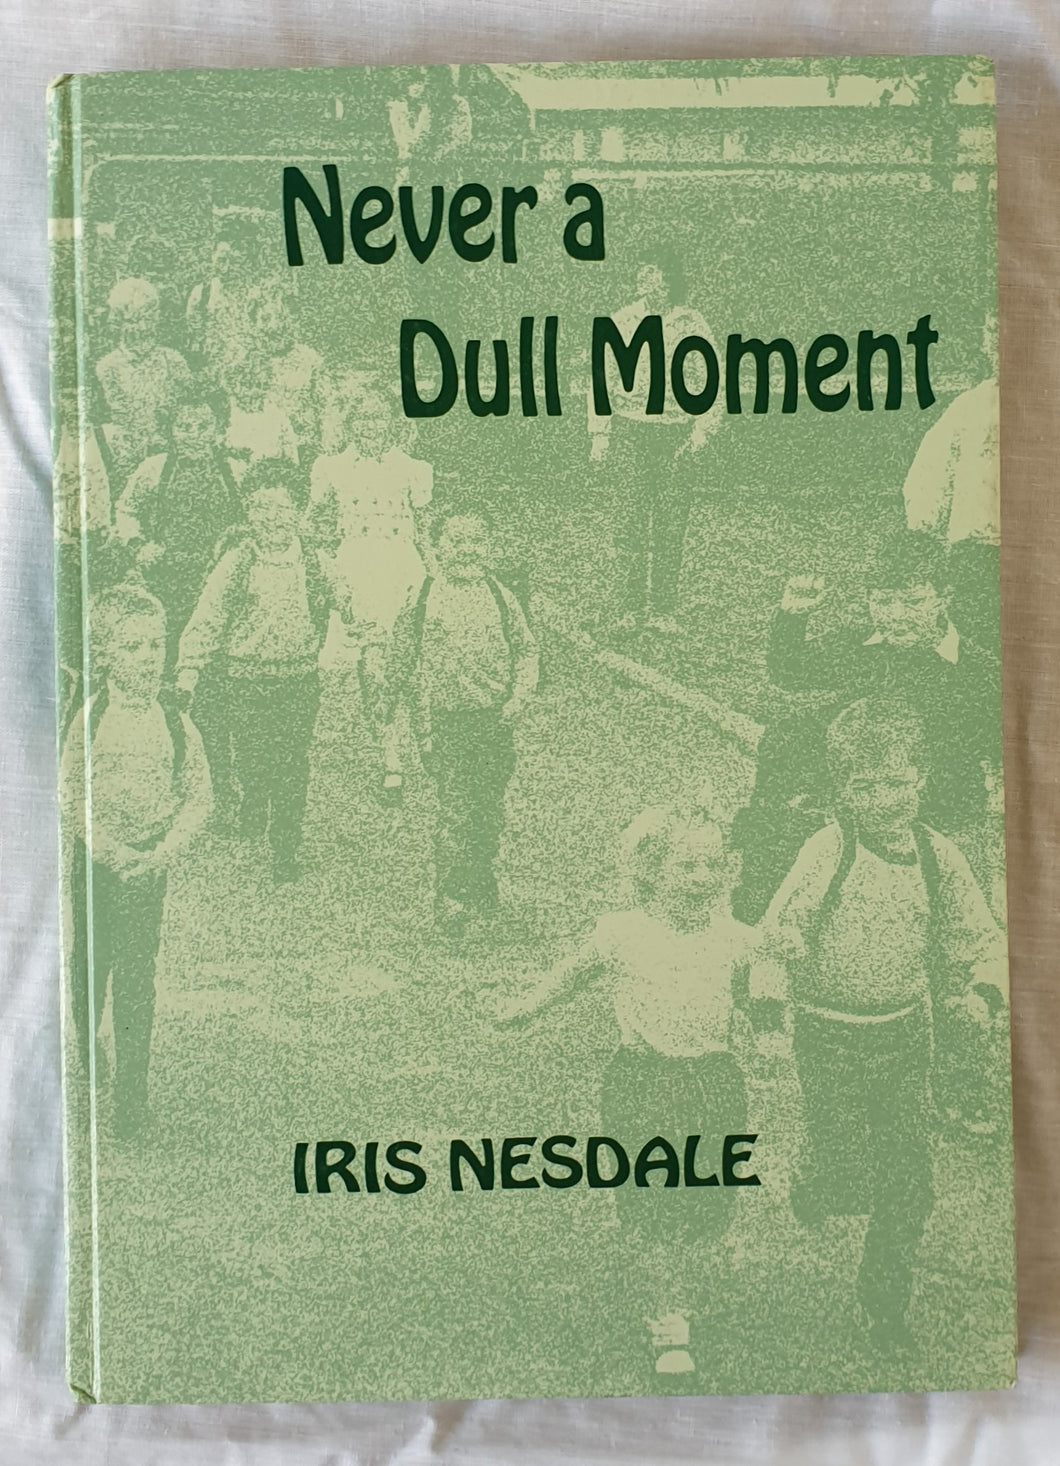 Never a Dull Moment by Iris Nesdale